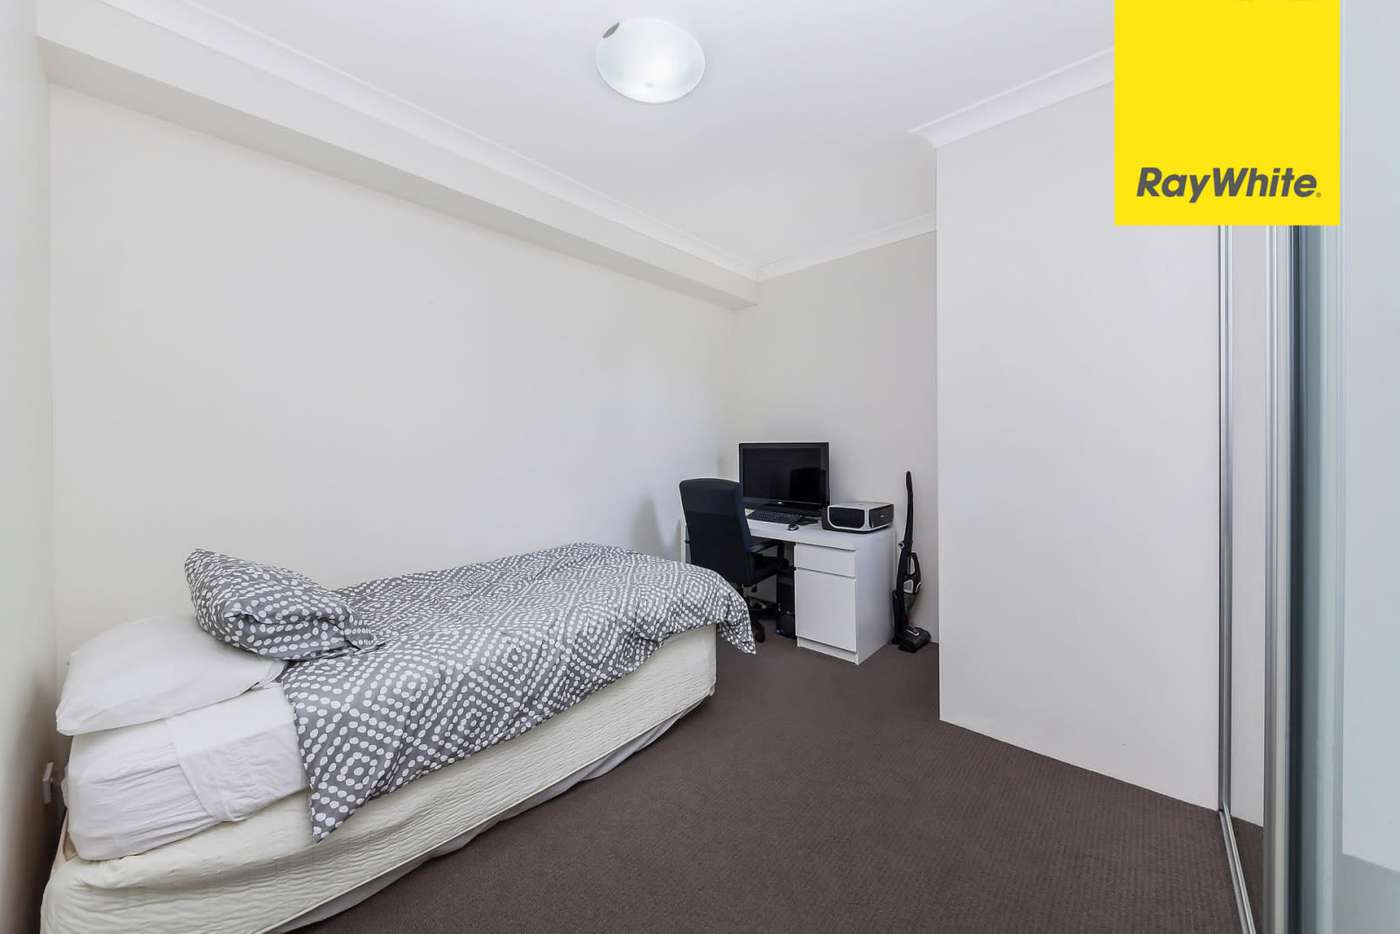 Seventh view of Homely apartment listing, 12/23-27 Dressler Court, Merrylands NSW 2160